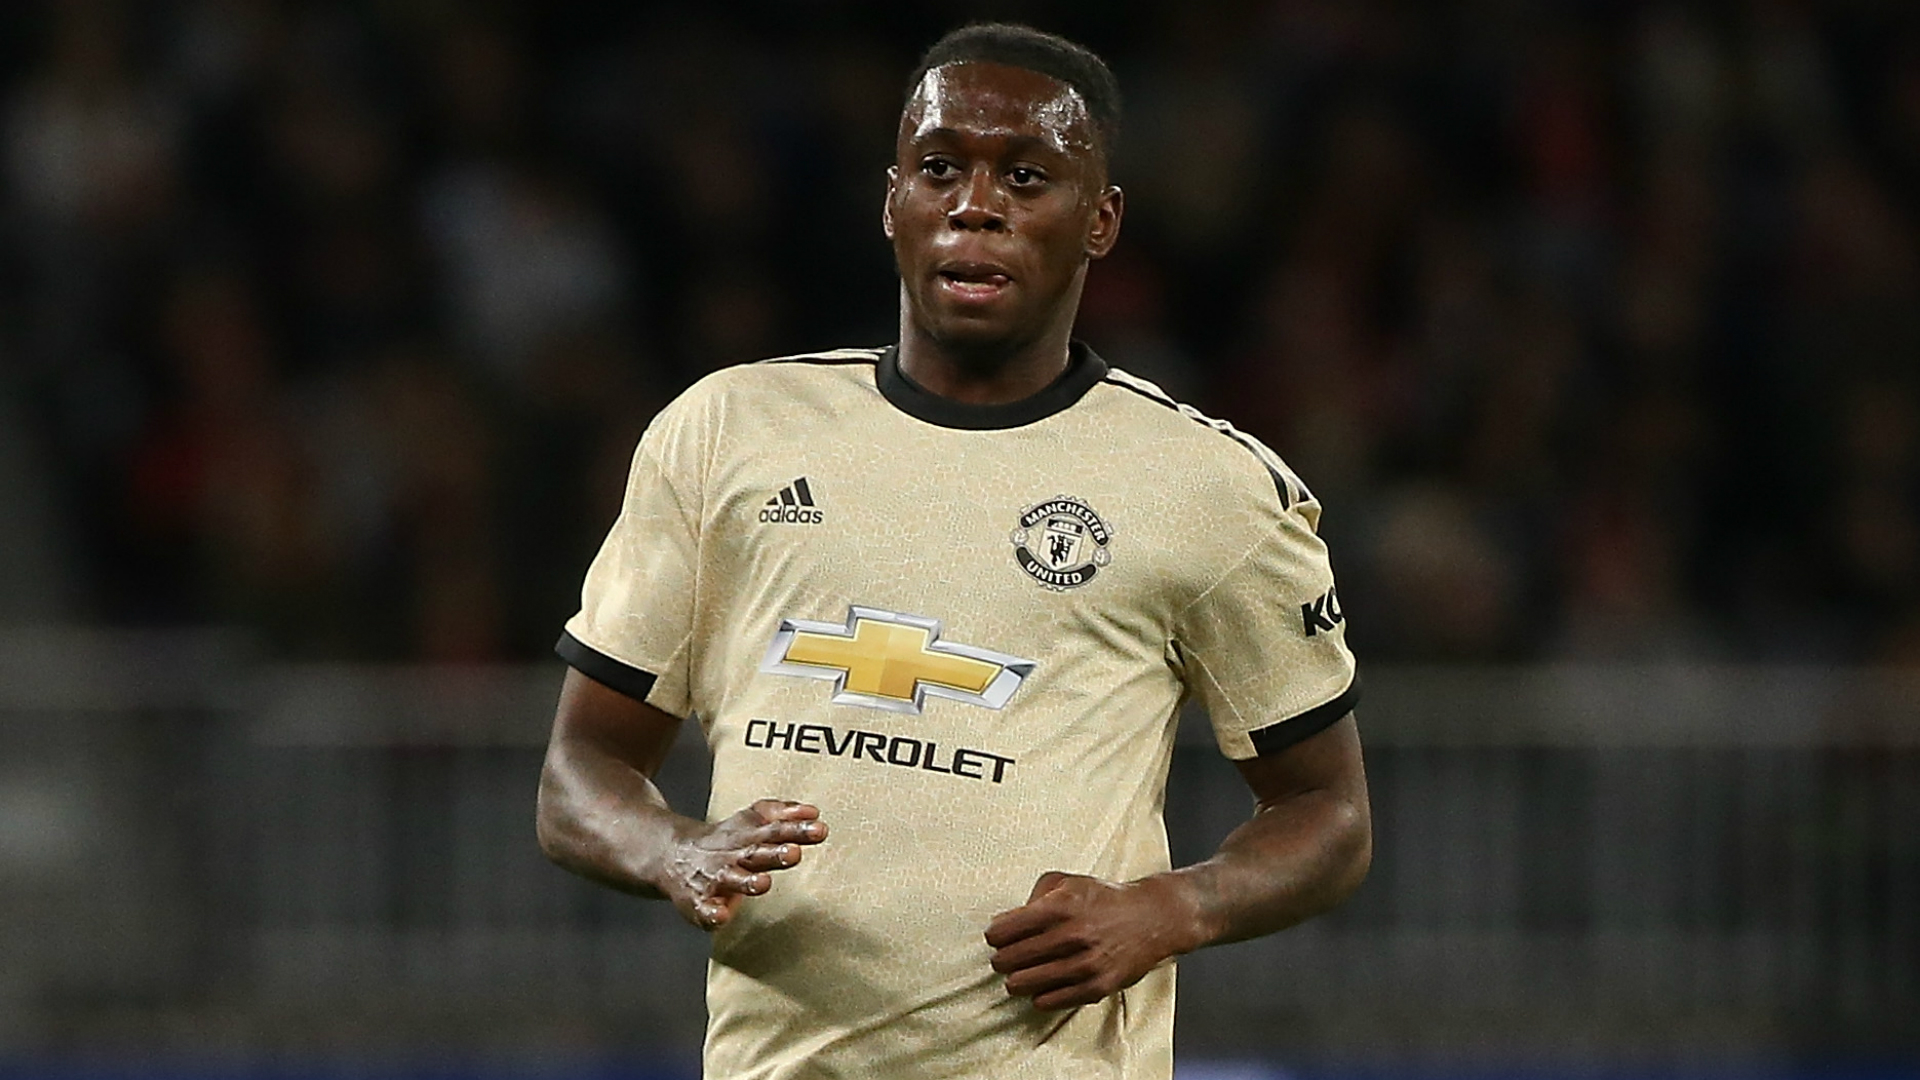 Zaha gave Wan-Bissaka advice after joining Manchester United